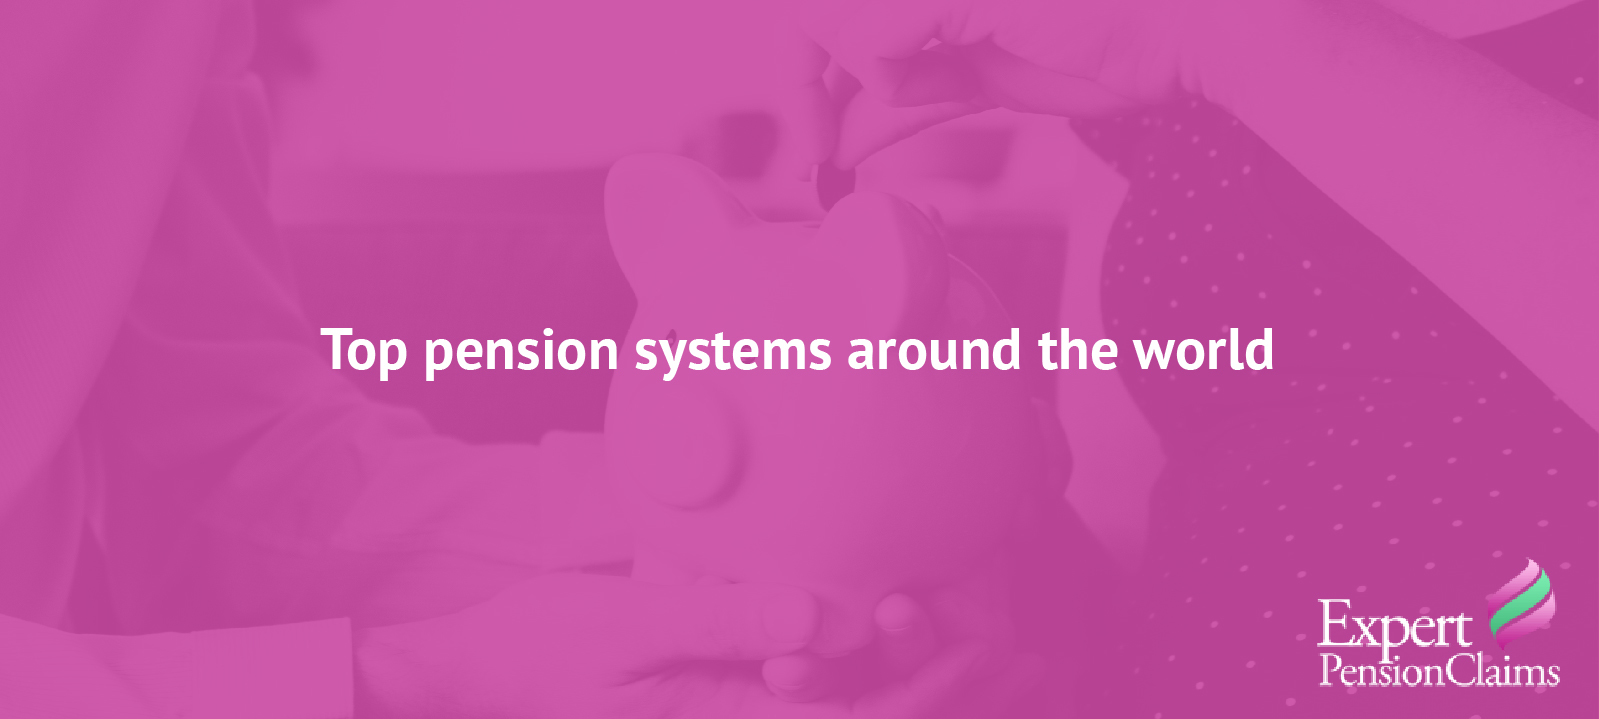 Top pension systems around the world